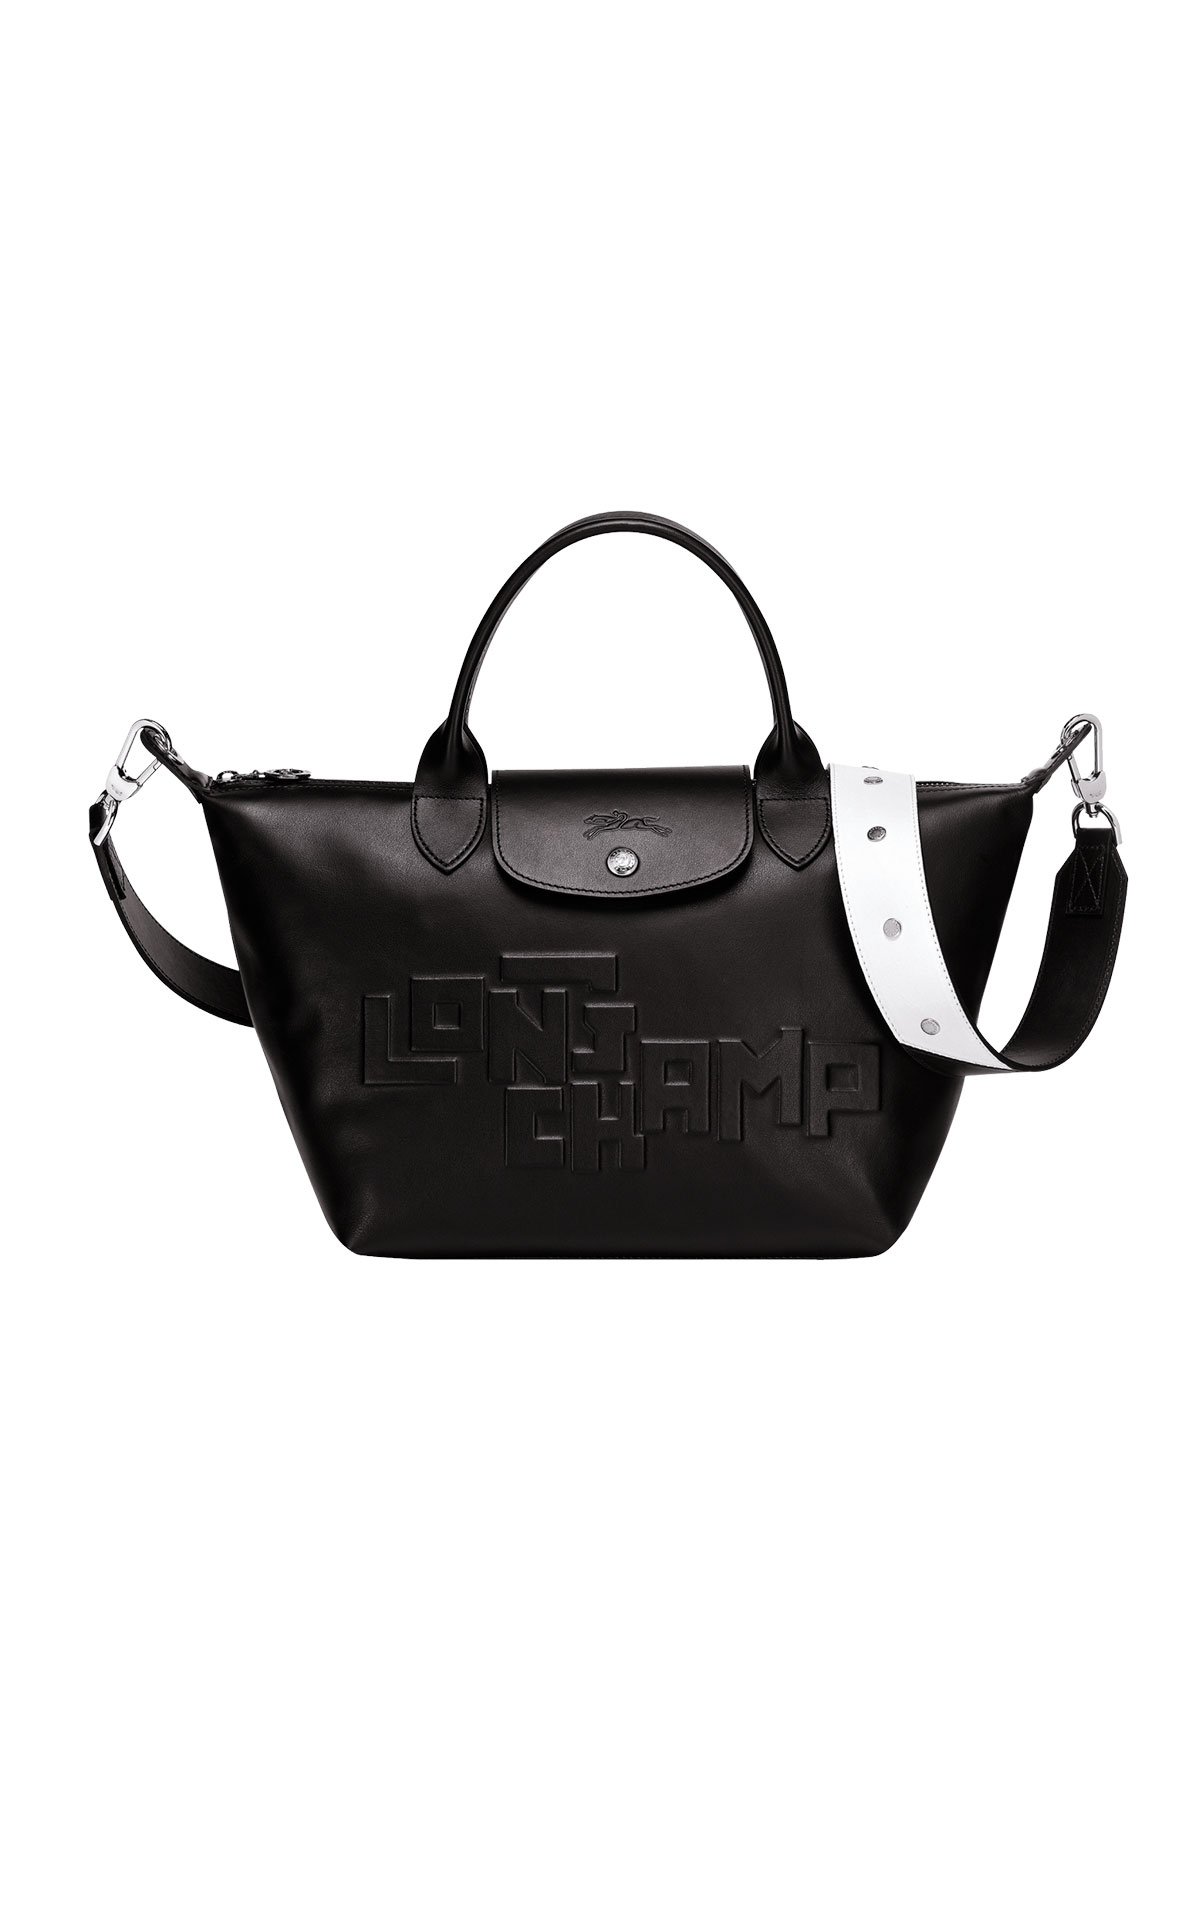 Black leather pliage bag with logo Longchamp